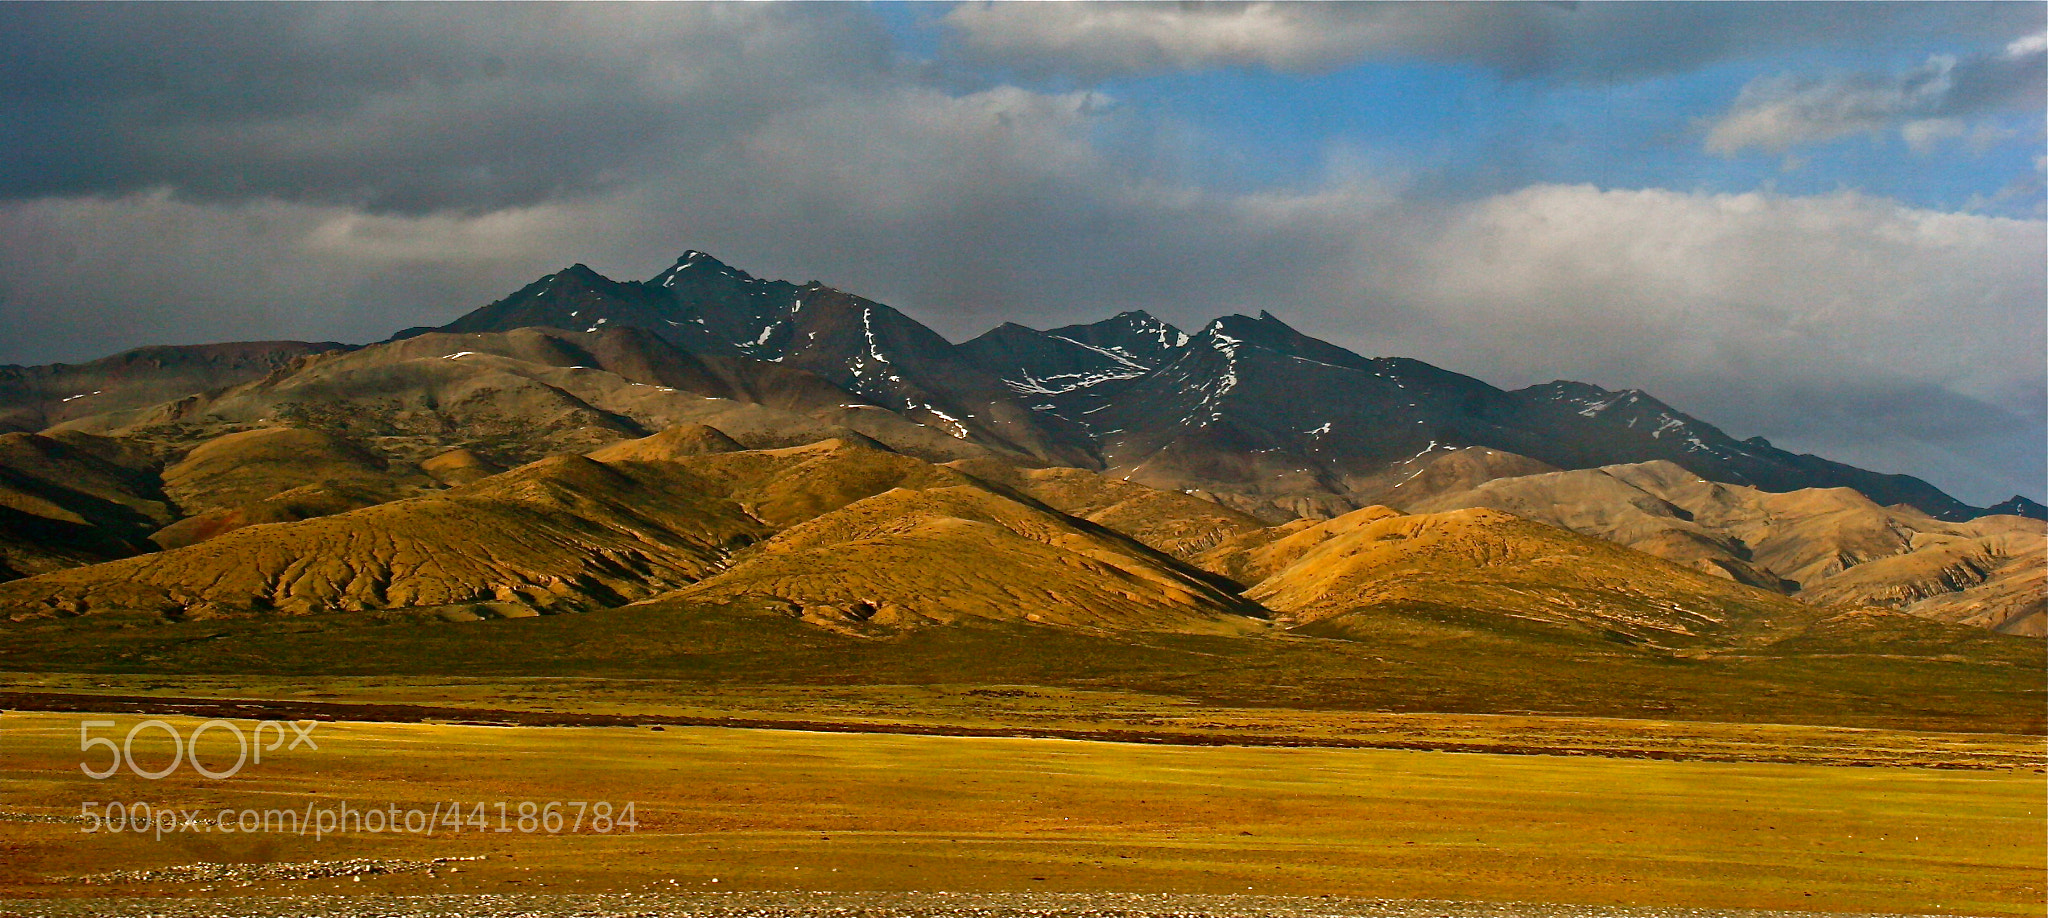 Photograph Tibetan Landscape by Neeraj Jain on 500px